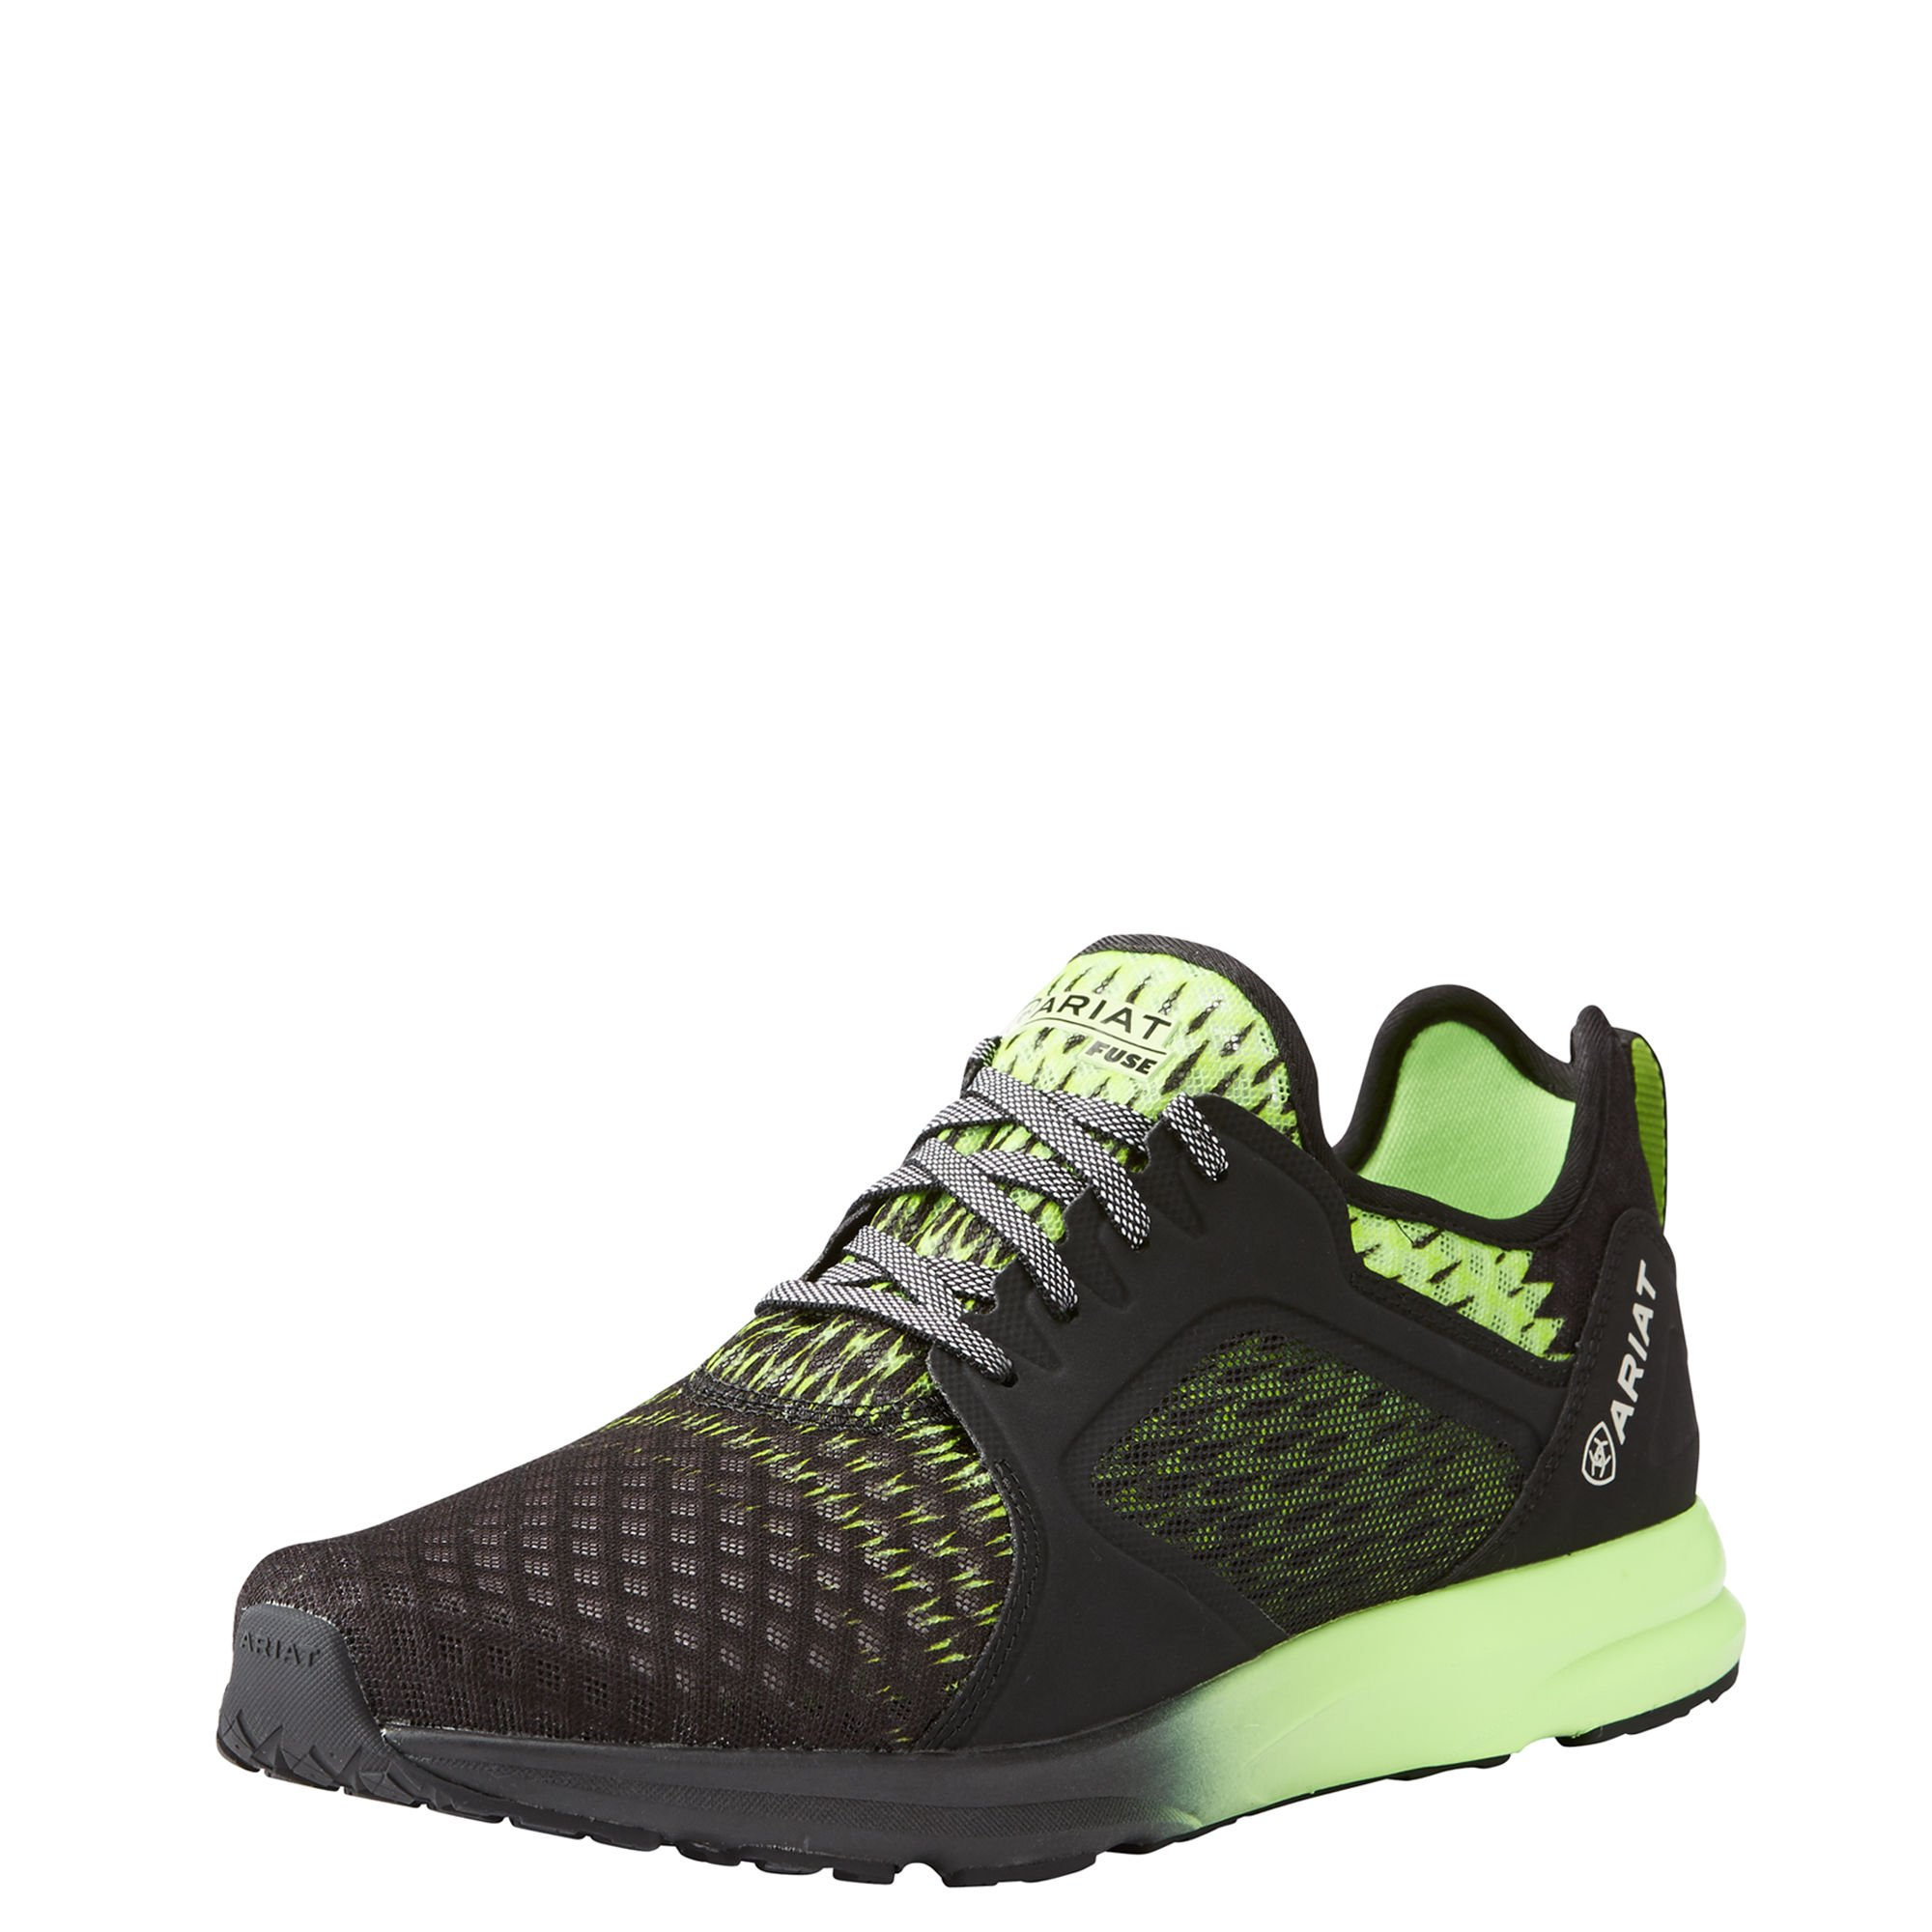 Ariat Men's Fuse Athletic Shoe, Lime Black Ombre Mesh, 13 D US